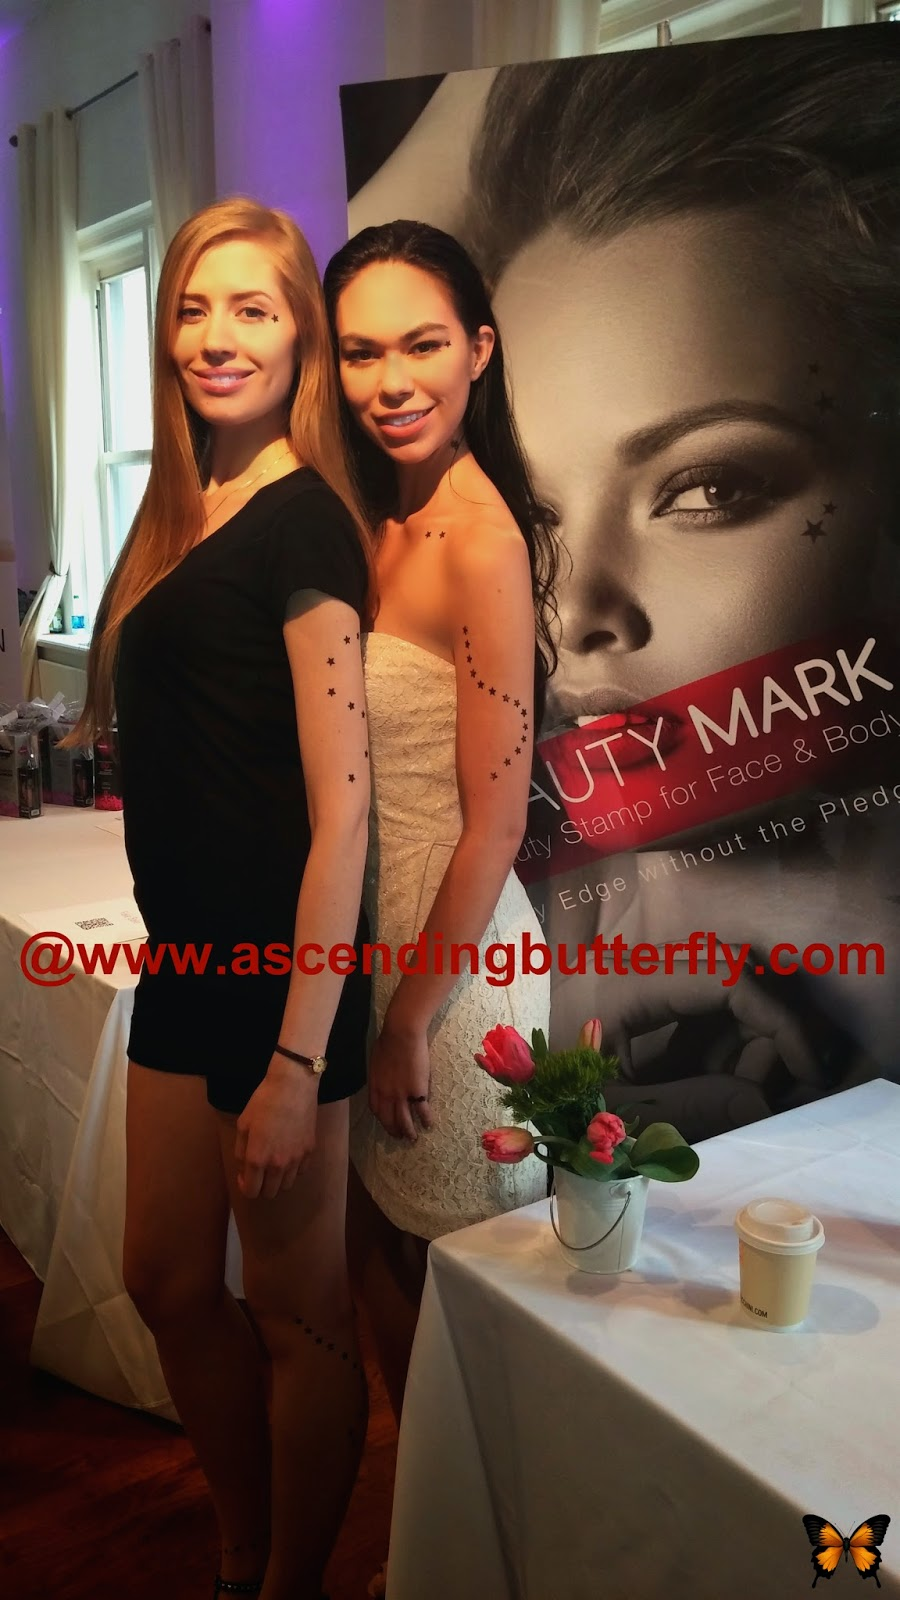 Absolute New York, NickaK New York Beauty Mark Beauty Stamp for Face and Body at BeautyPress Spotlight Day February 2014